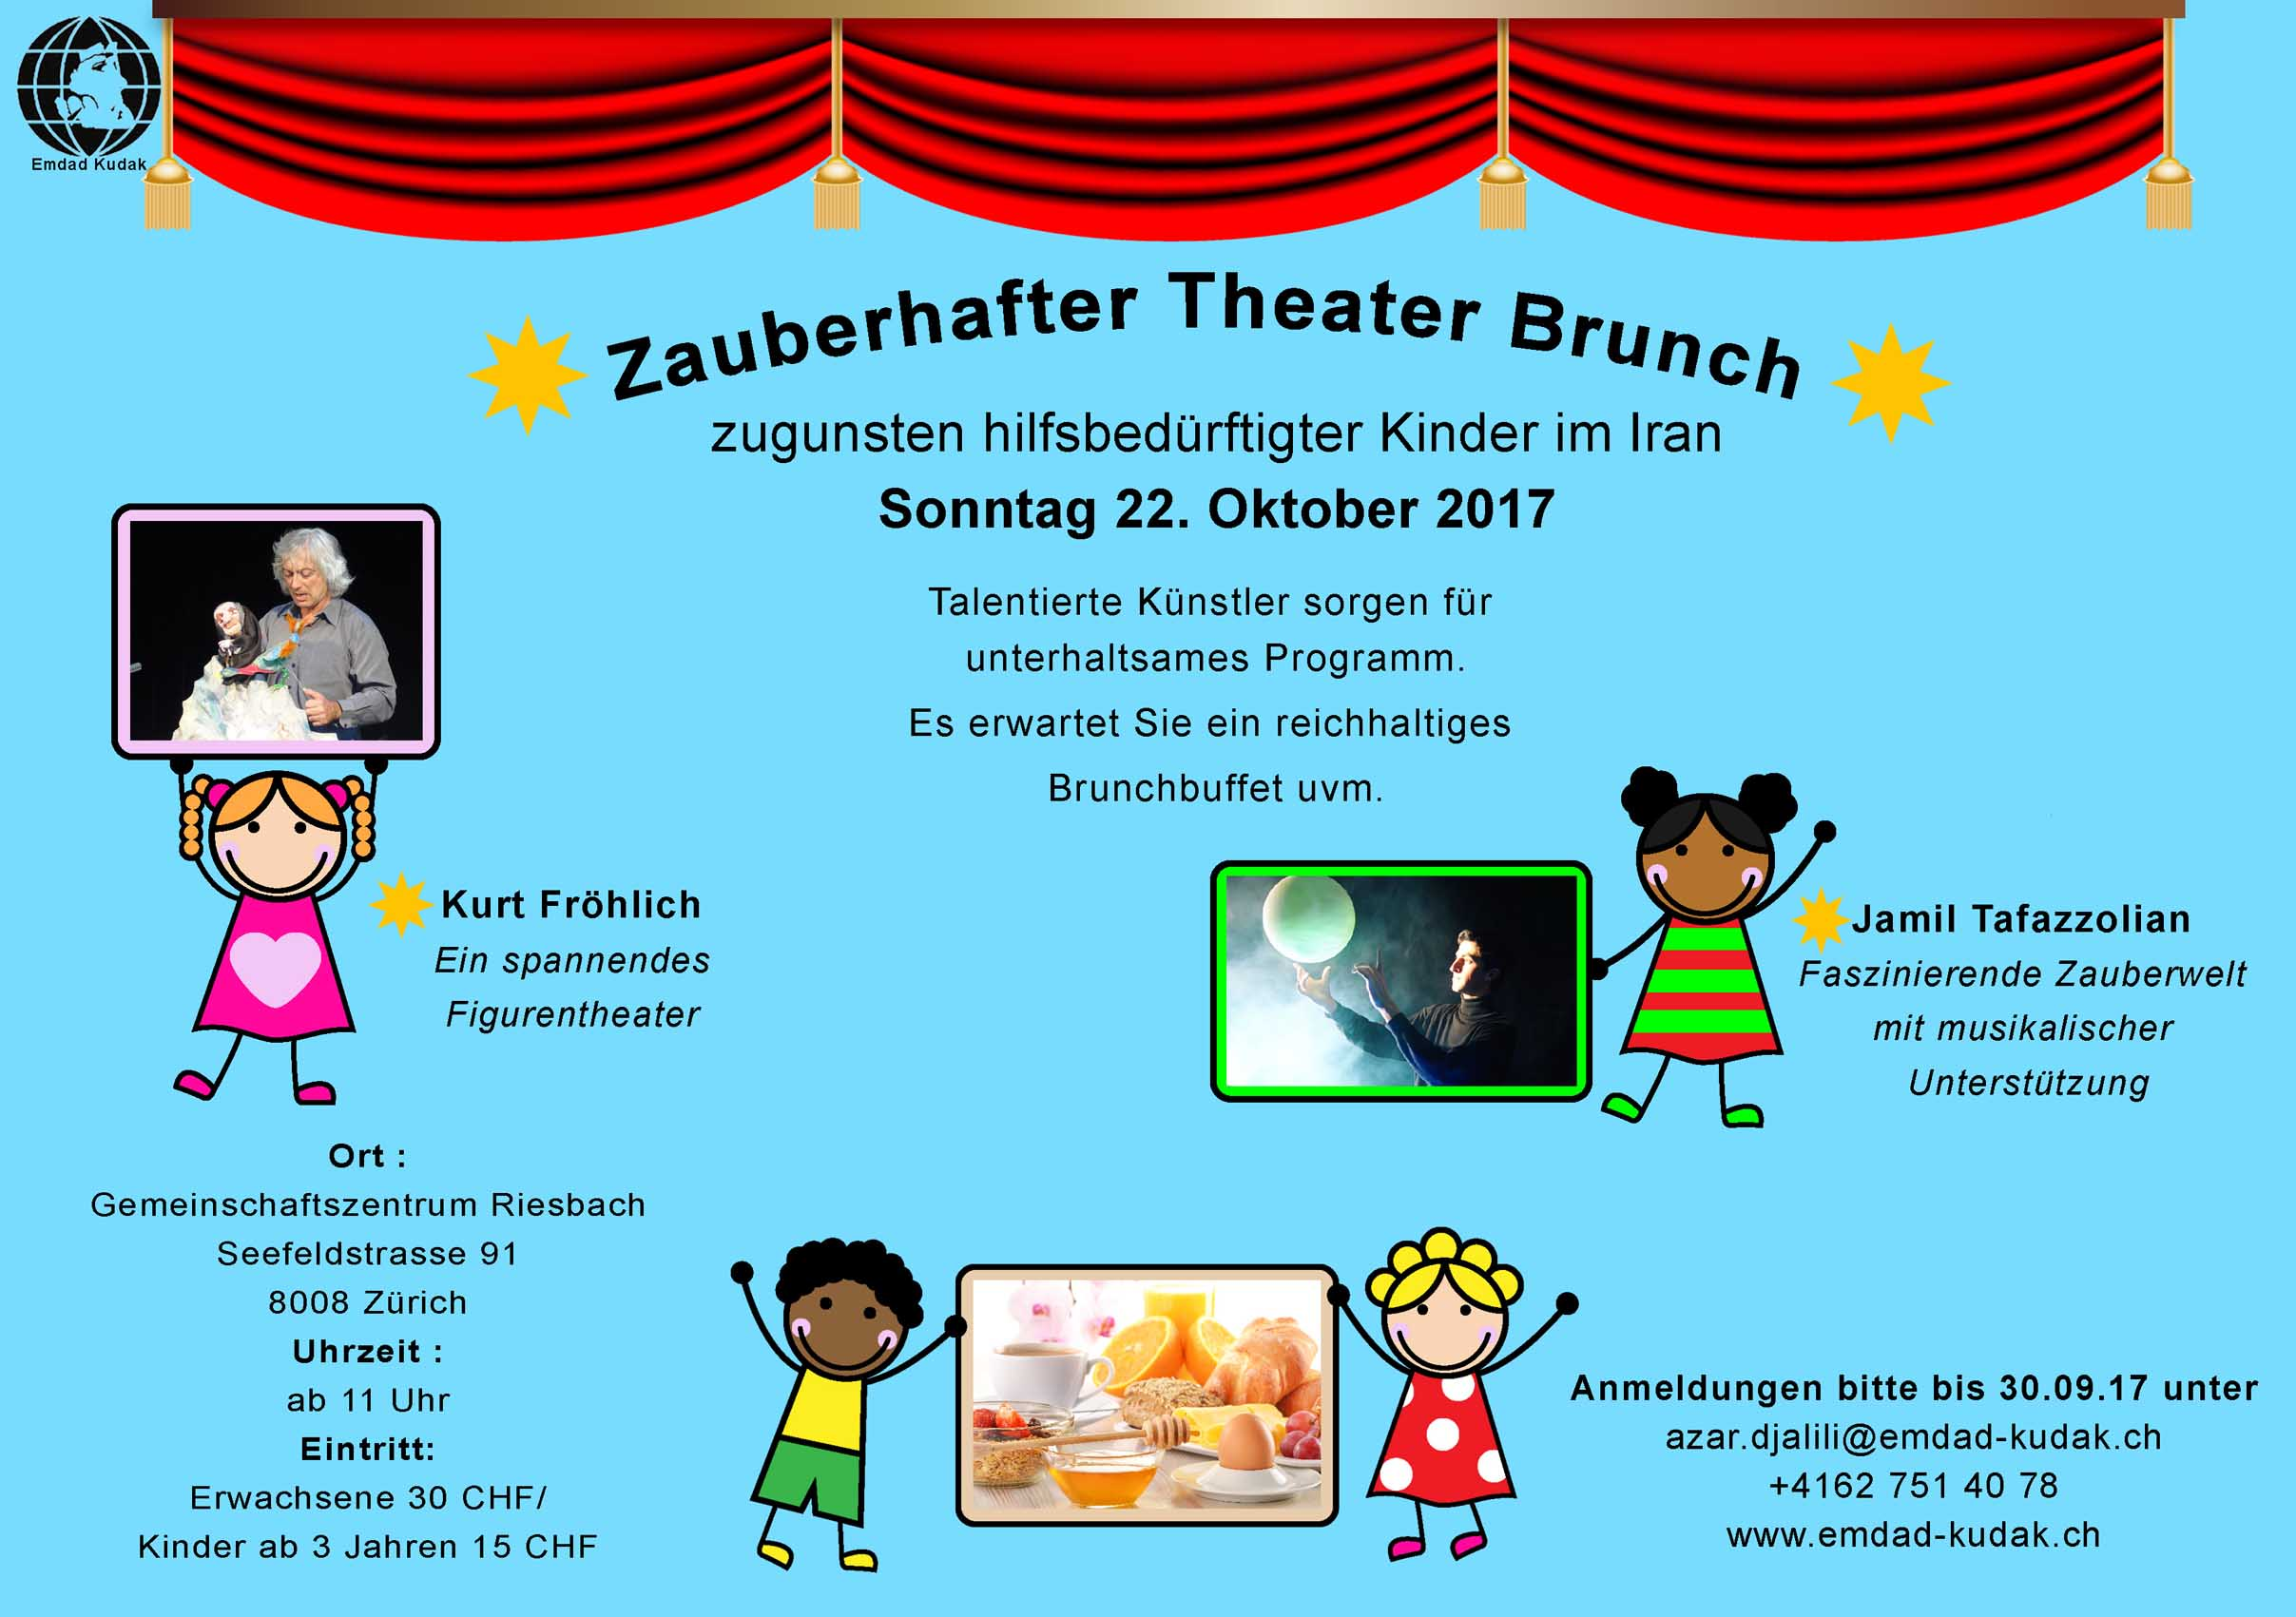 Zauberhafter Theater Brunch 2017